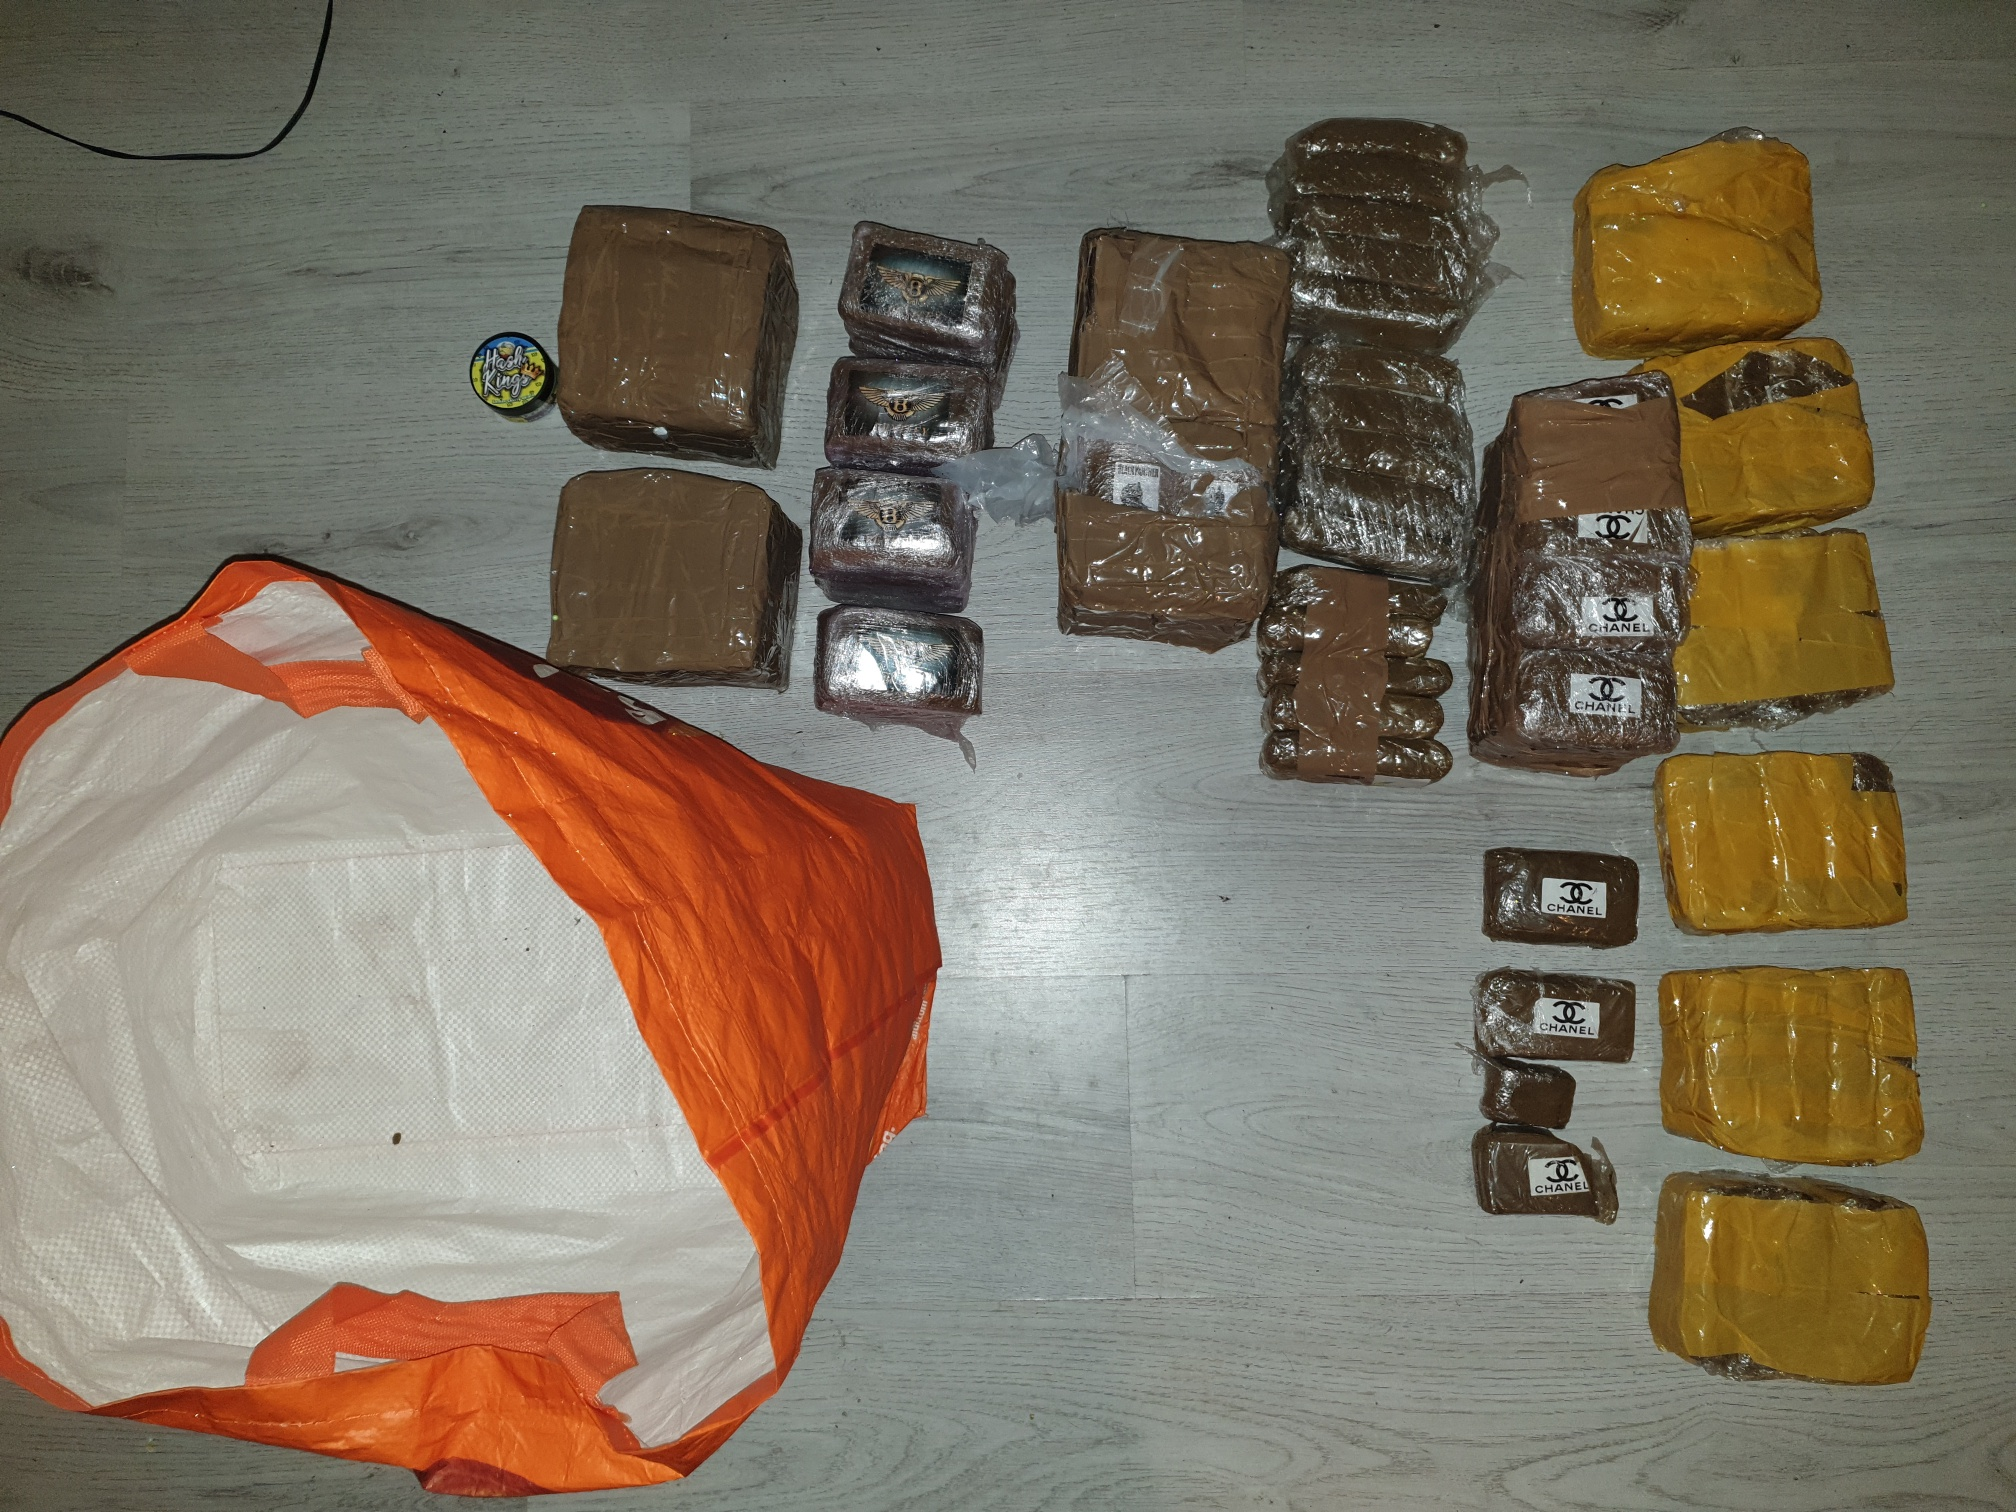 Two Sefton men held after 'colossal drugs find' in city